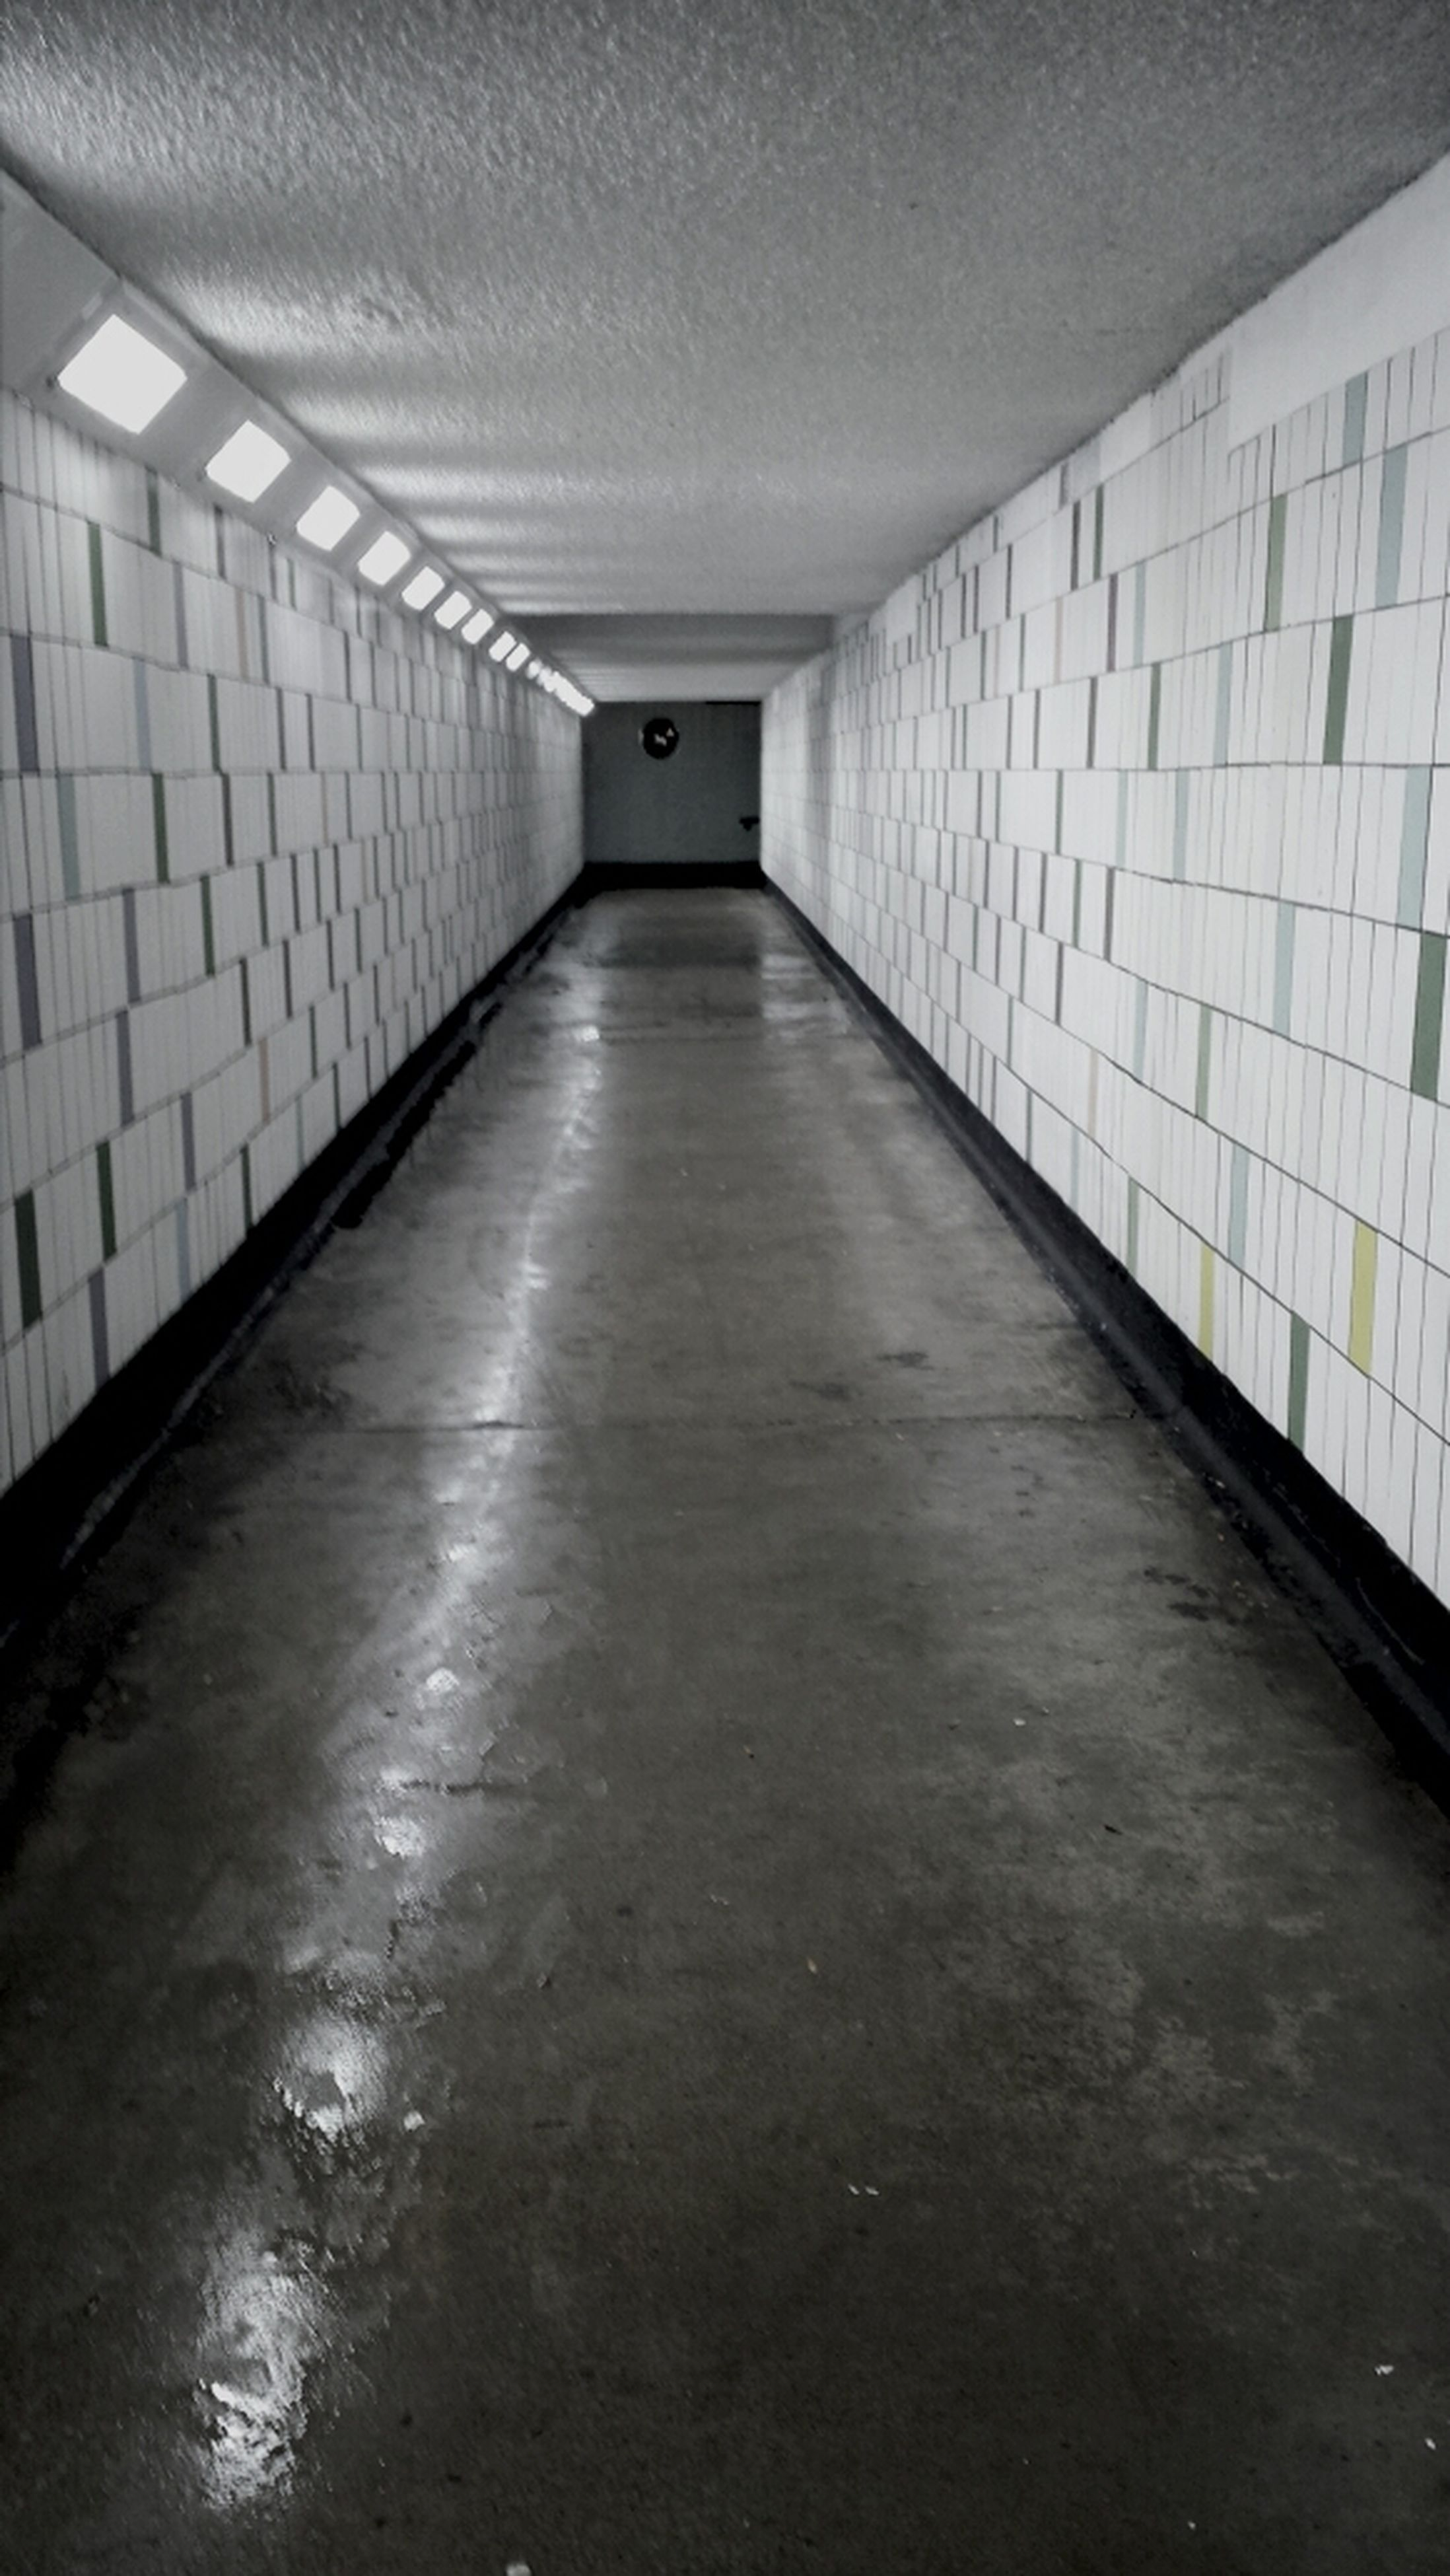 indoors, the way forward, architecture, corridor, built structure, illuminated, diminishing perspective, empty, ceiling, wall - building feature, absence, flooring, lighting equipment, tunnel, narrow, building, vanishing point, wall, tiled floor, interior